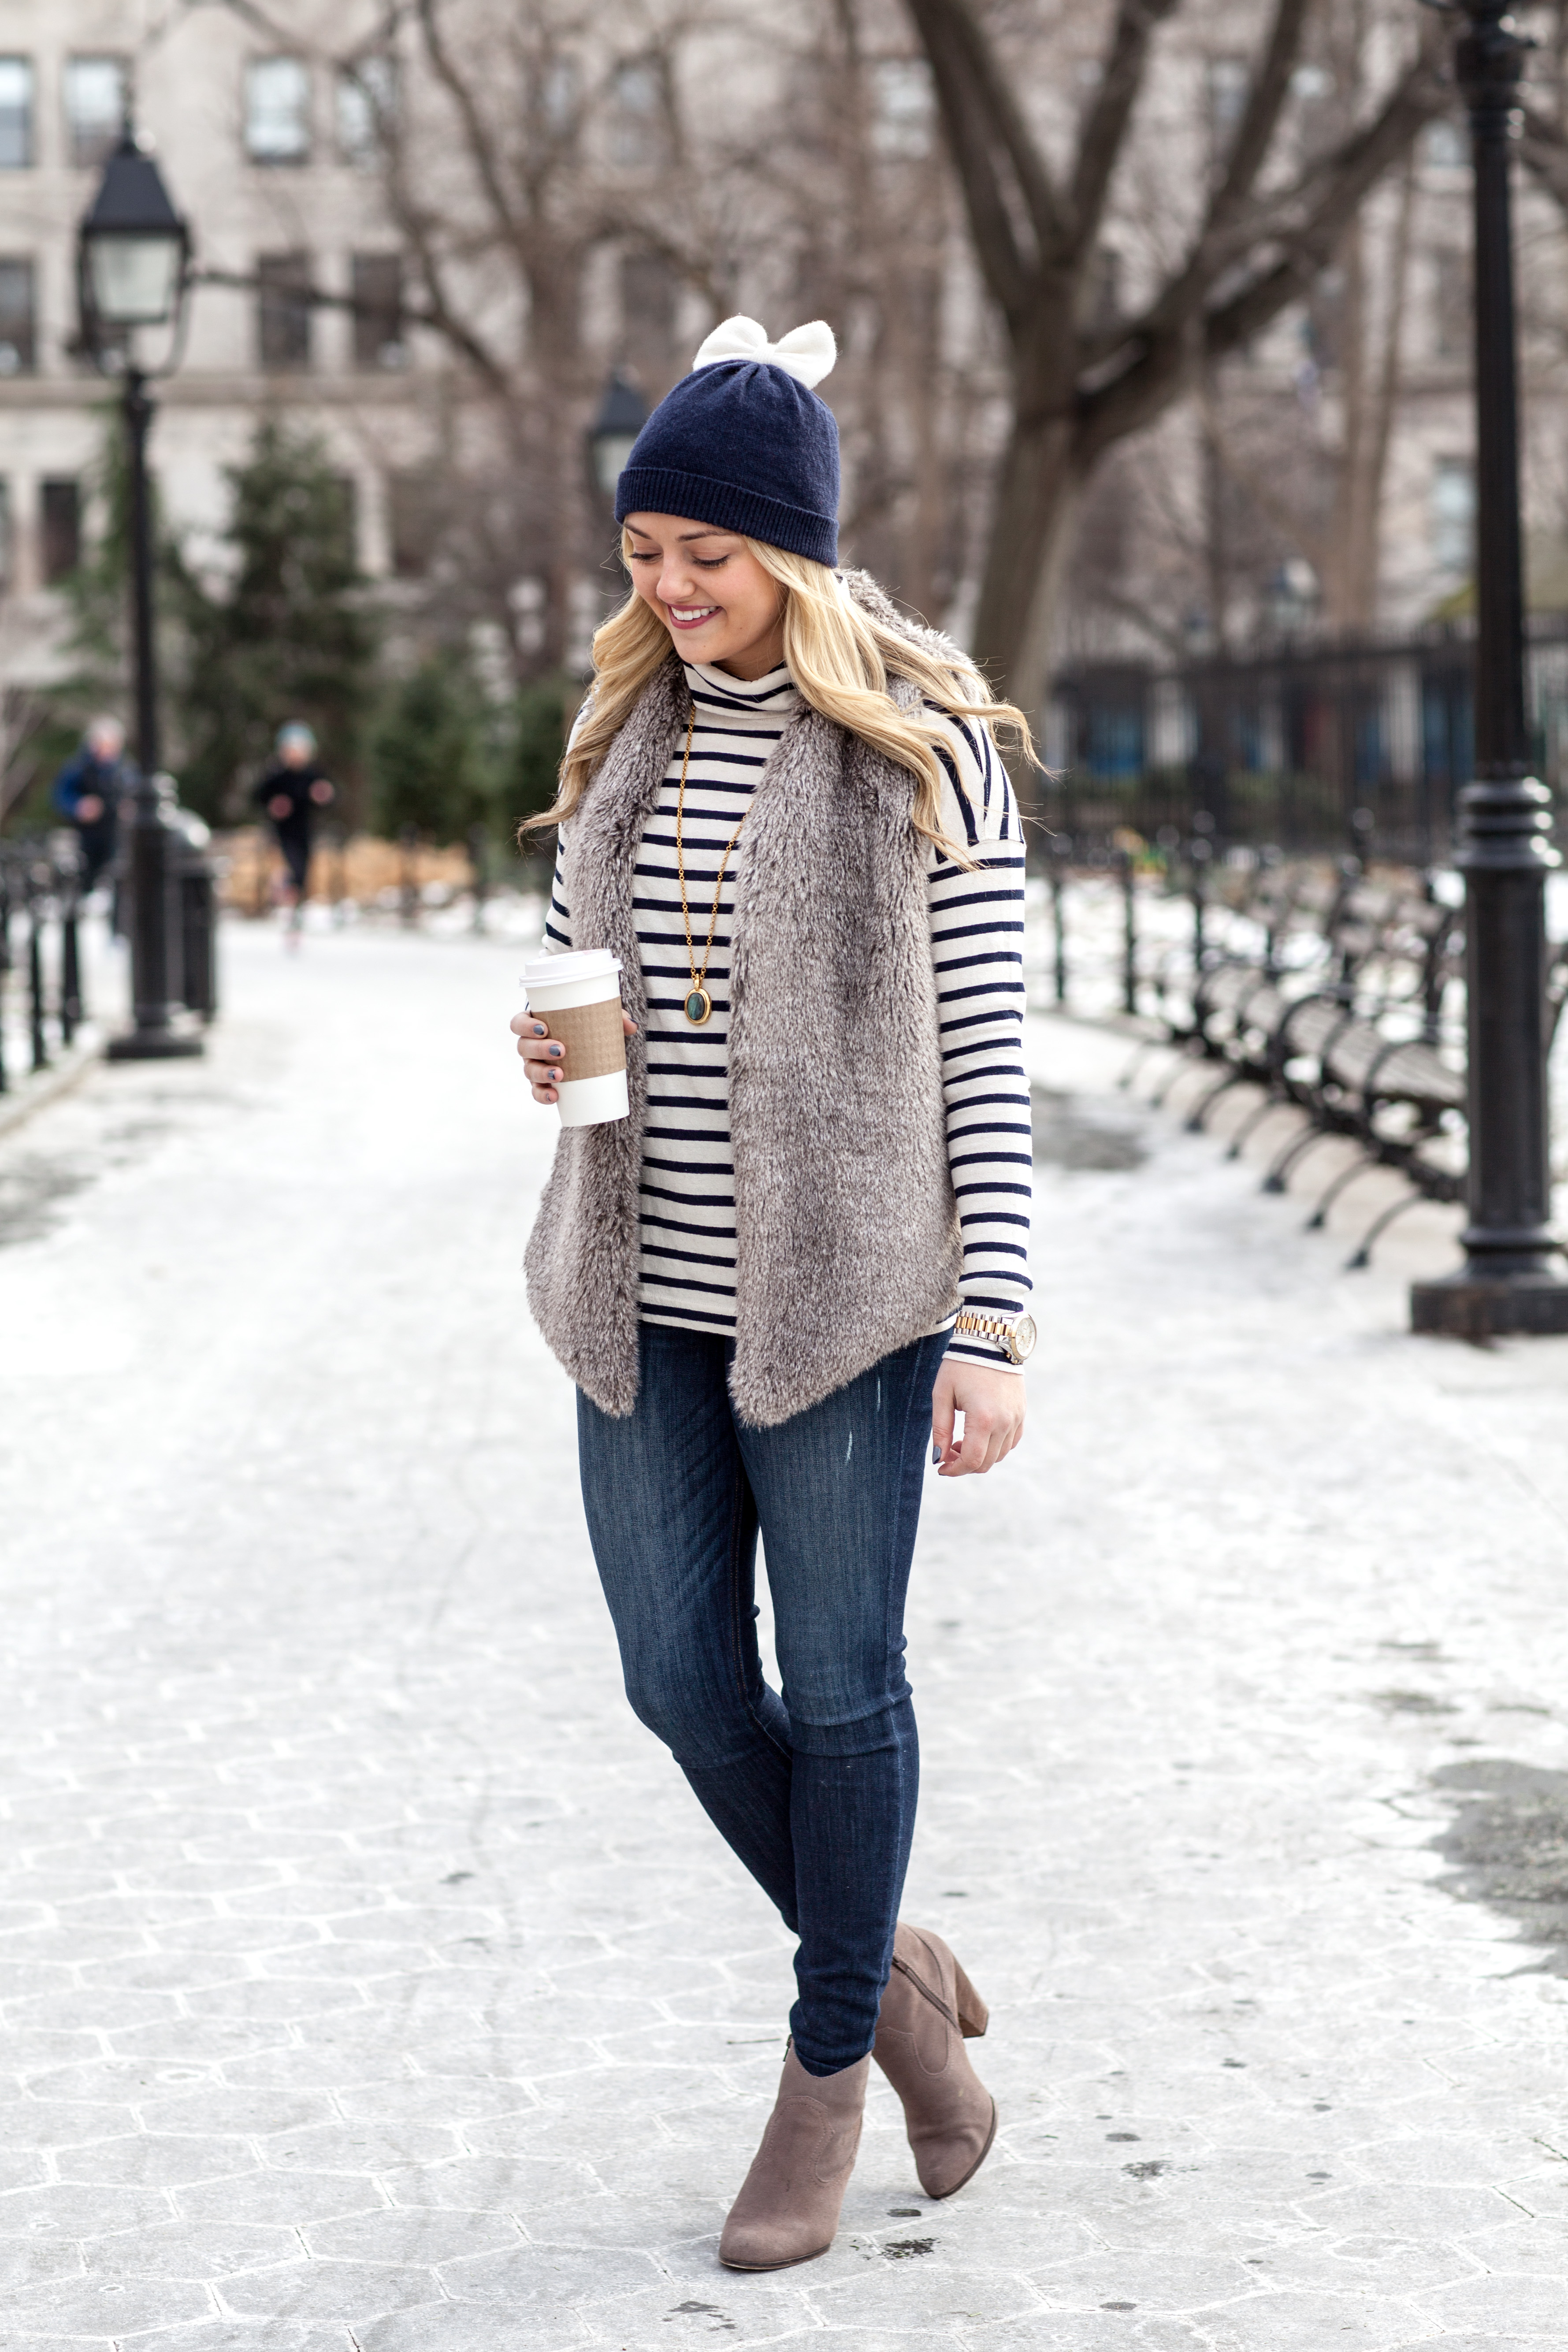 15aa3db0a4a Tart Collections Vest (also available here) Express Jeans · Steve Madden  Booties (also available here) Julie Vos Necklace · Kate Spade Beanie ...